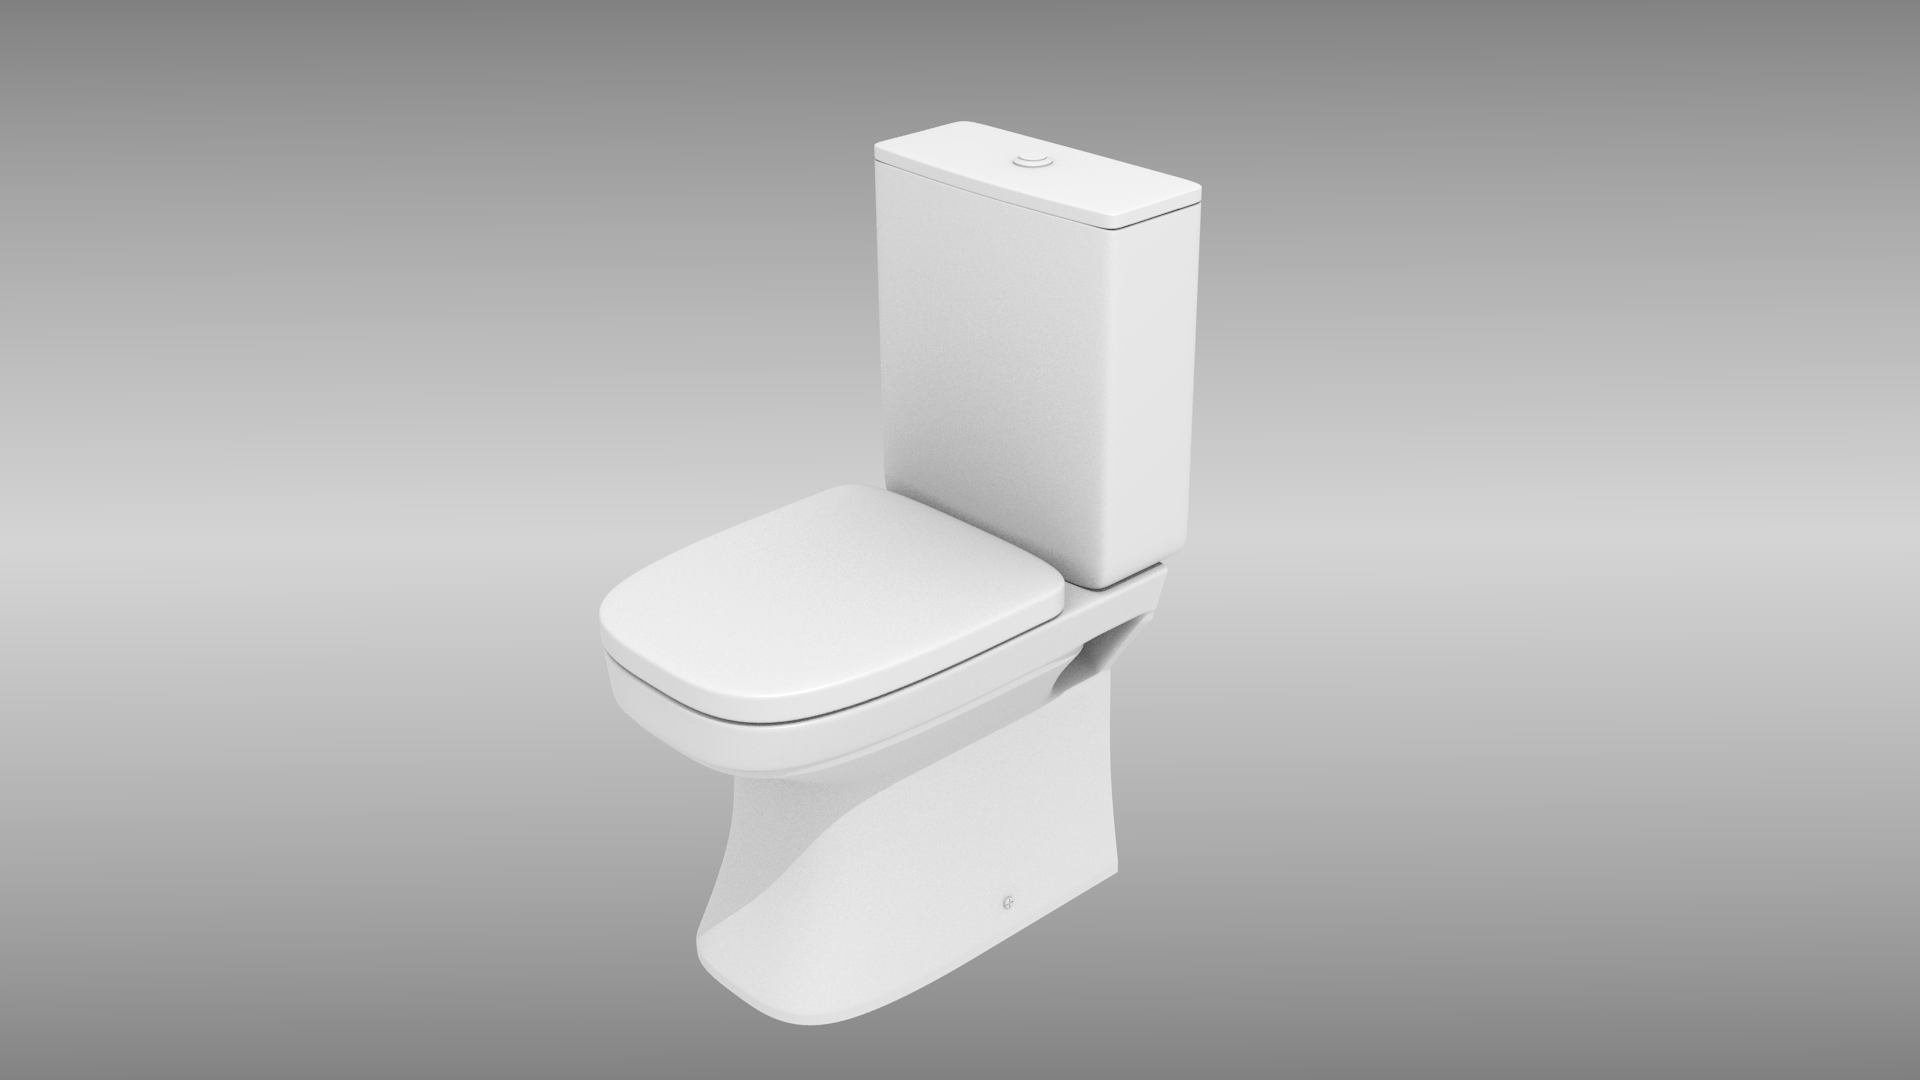 Toilet 3d Model Obj 3ds Fbx Stl Dae